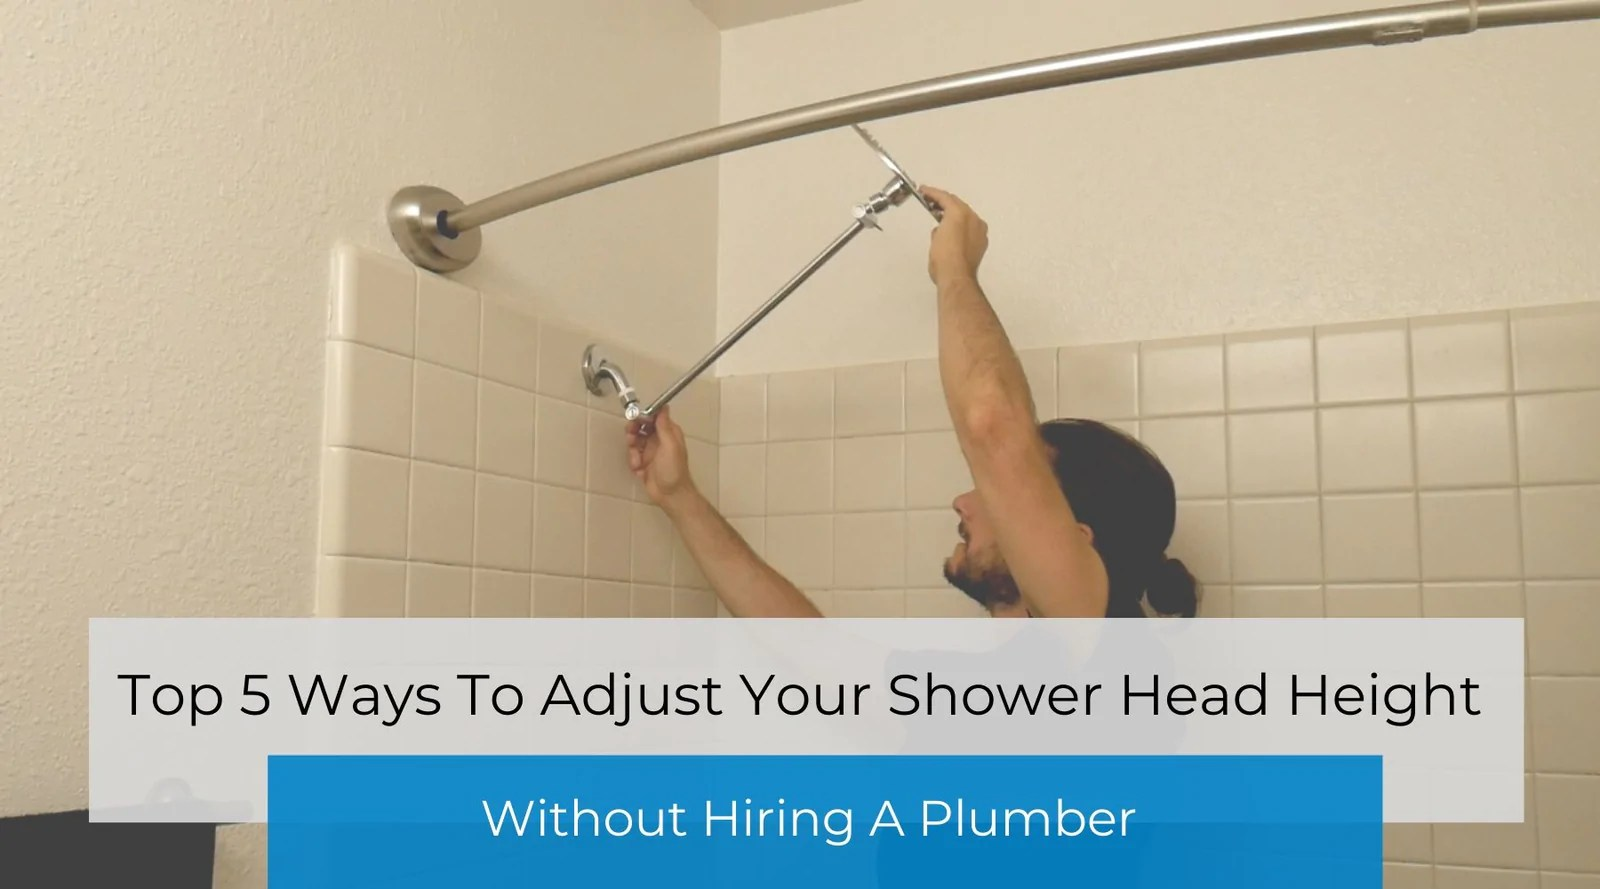 Top 5 Ways For Adjustable Height Shower Head Without Hiring